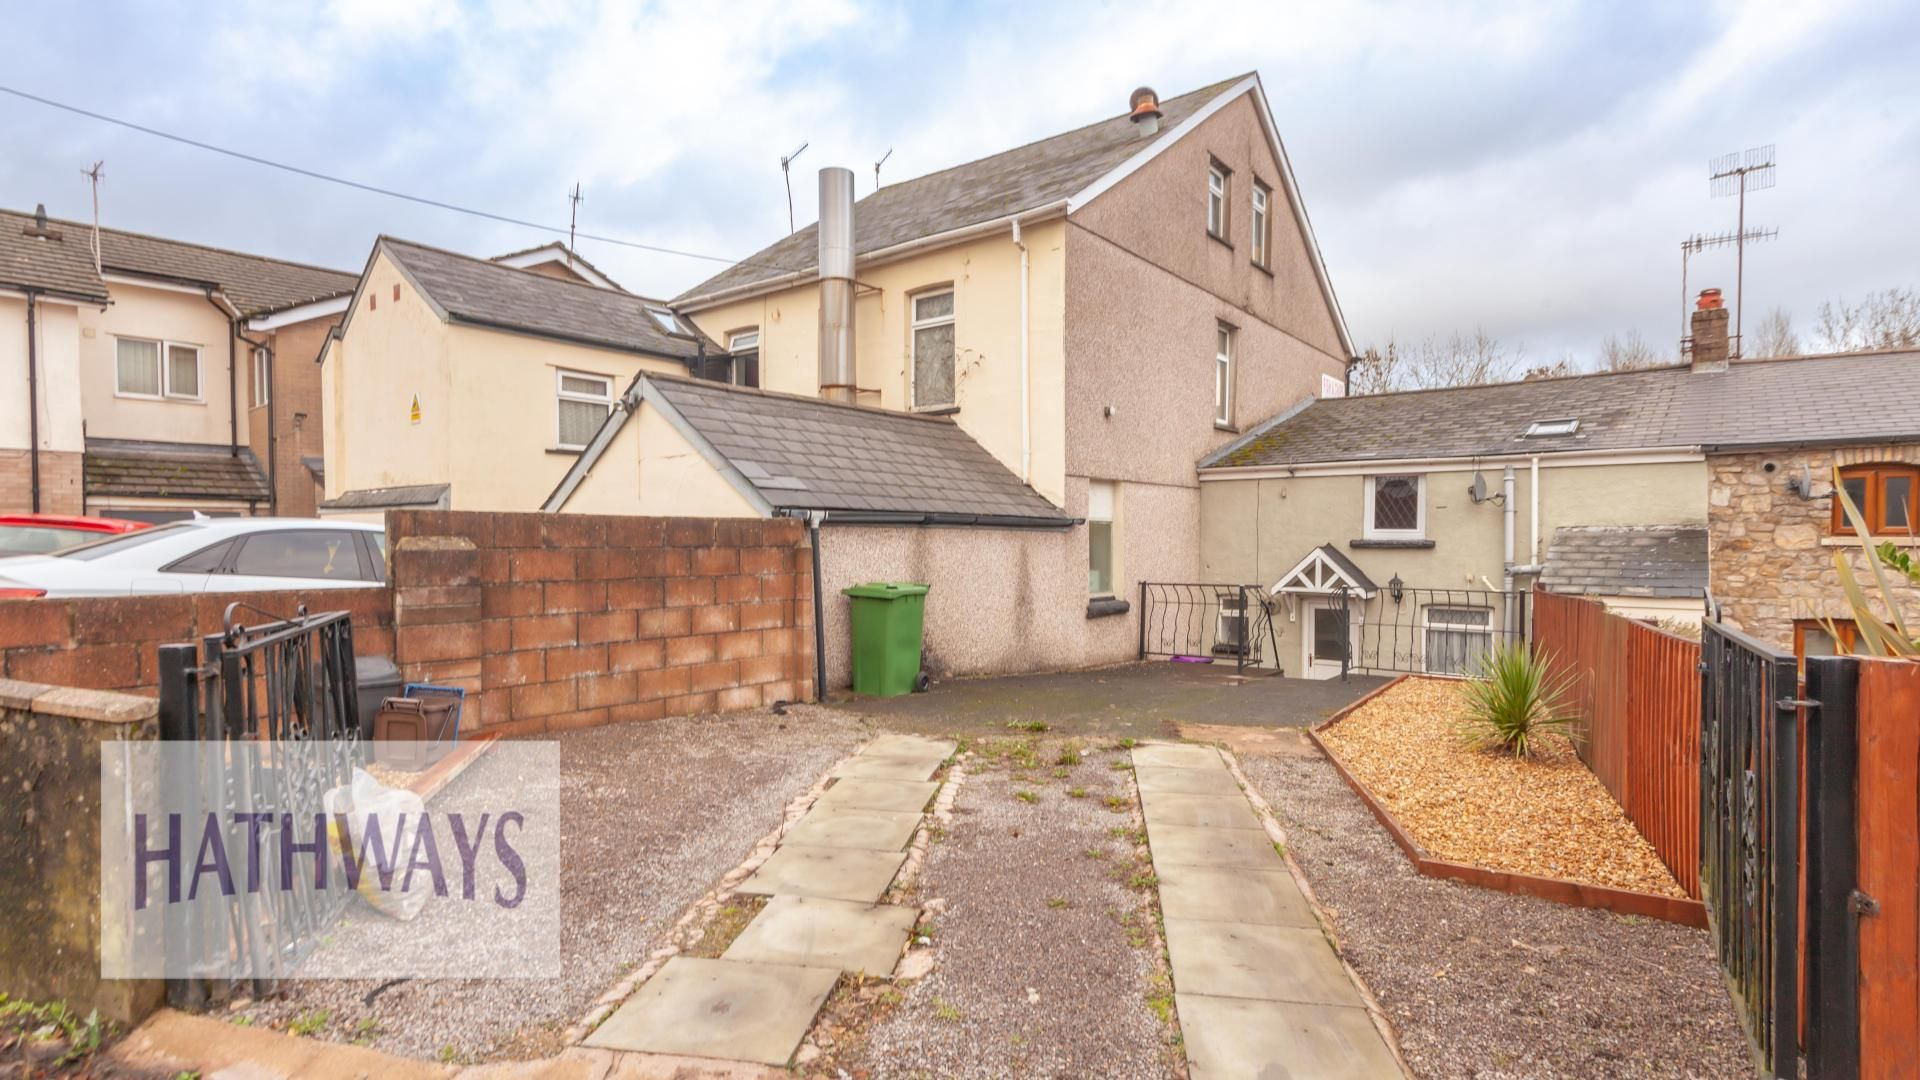 3 bed house for sale in St. Lukes Road, NP4